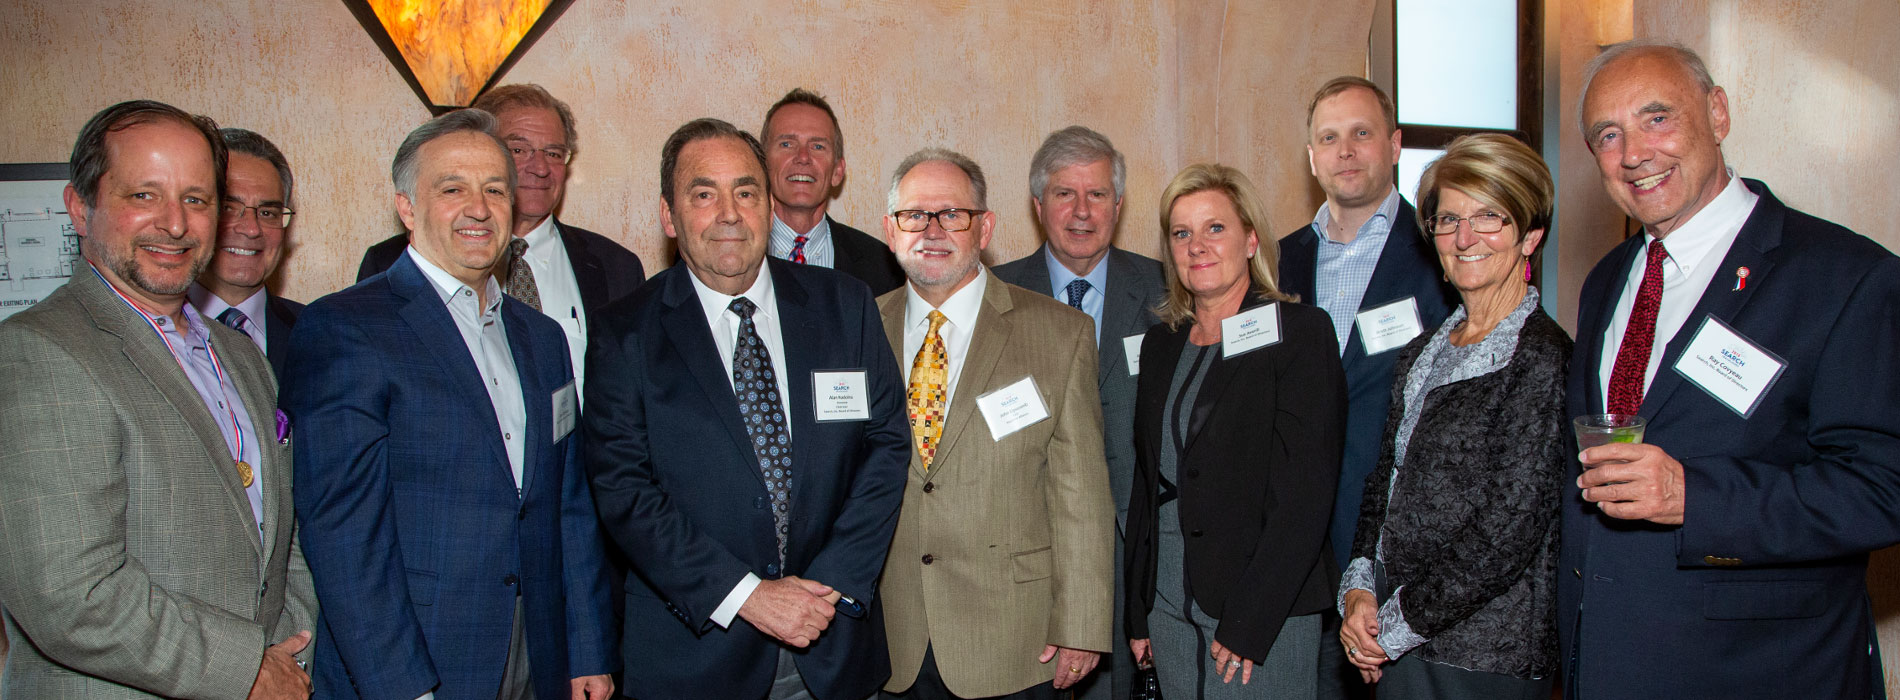 Image of the Search Inc. Board of Directors